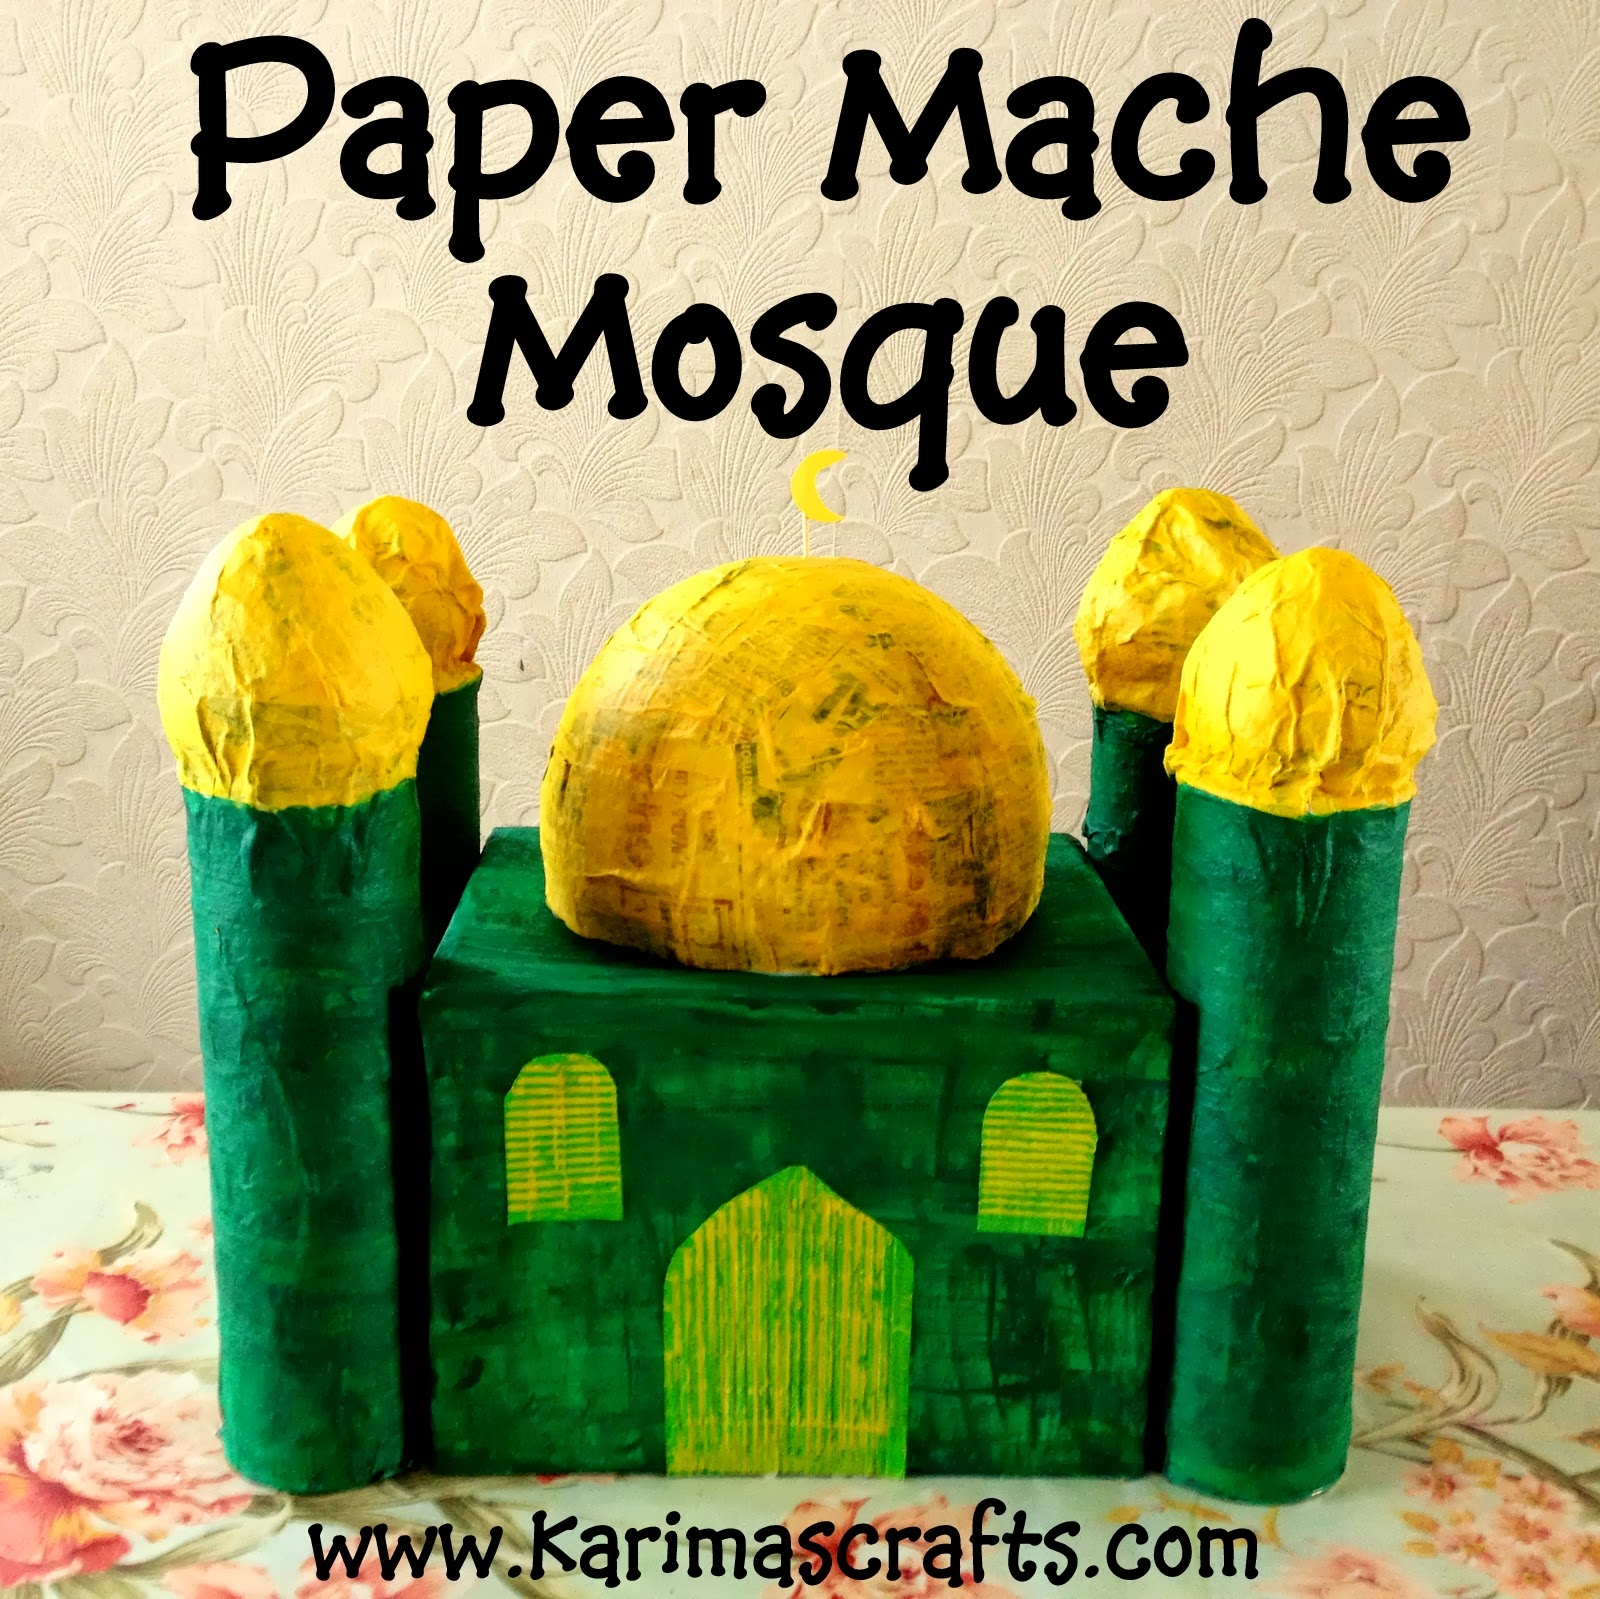 13 creative mosque crafts to make with kids   in the playroom